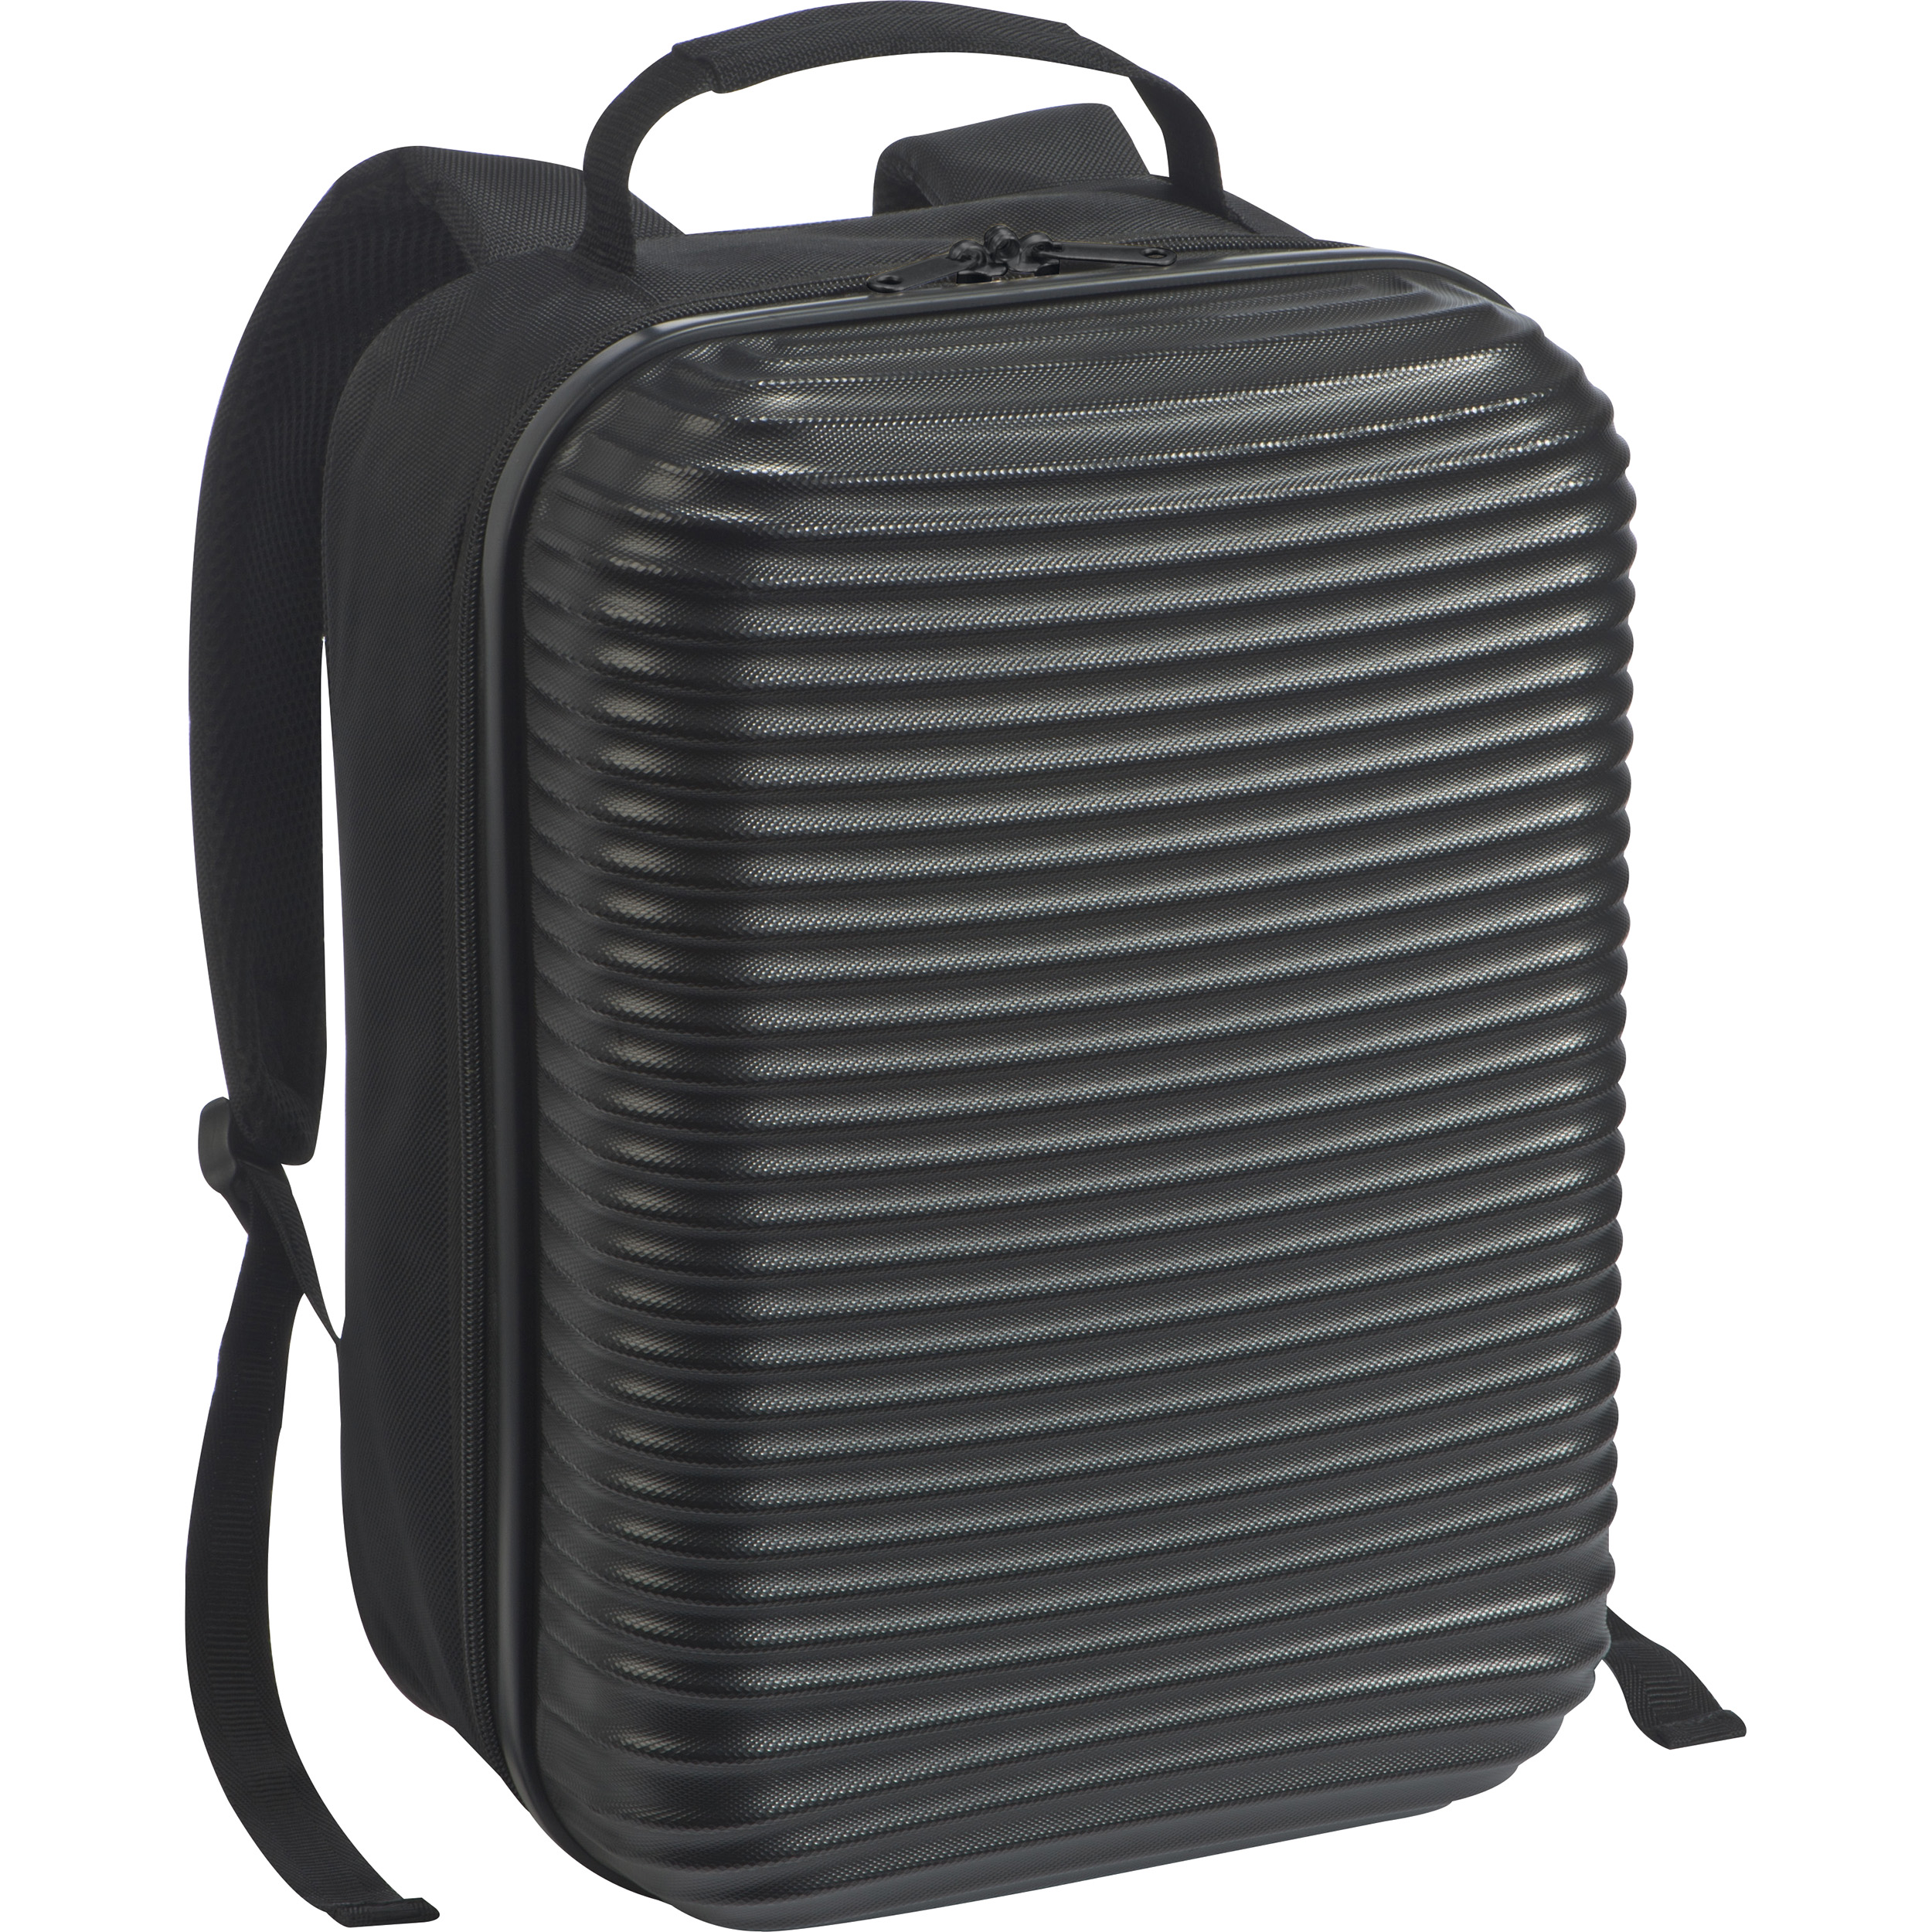 Backpack with hardcover front